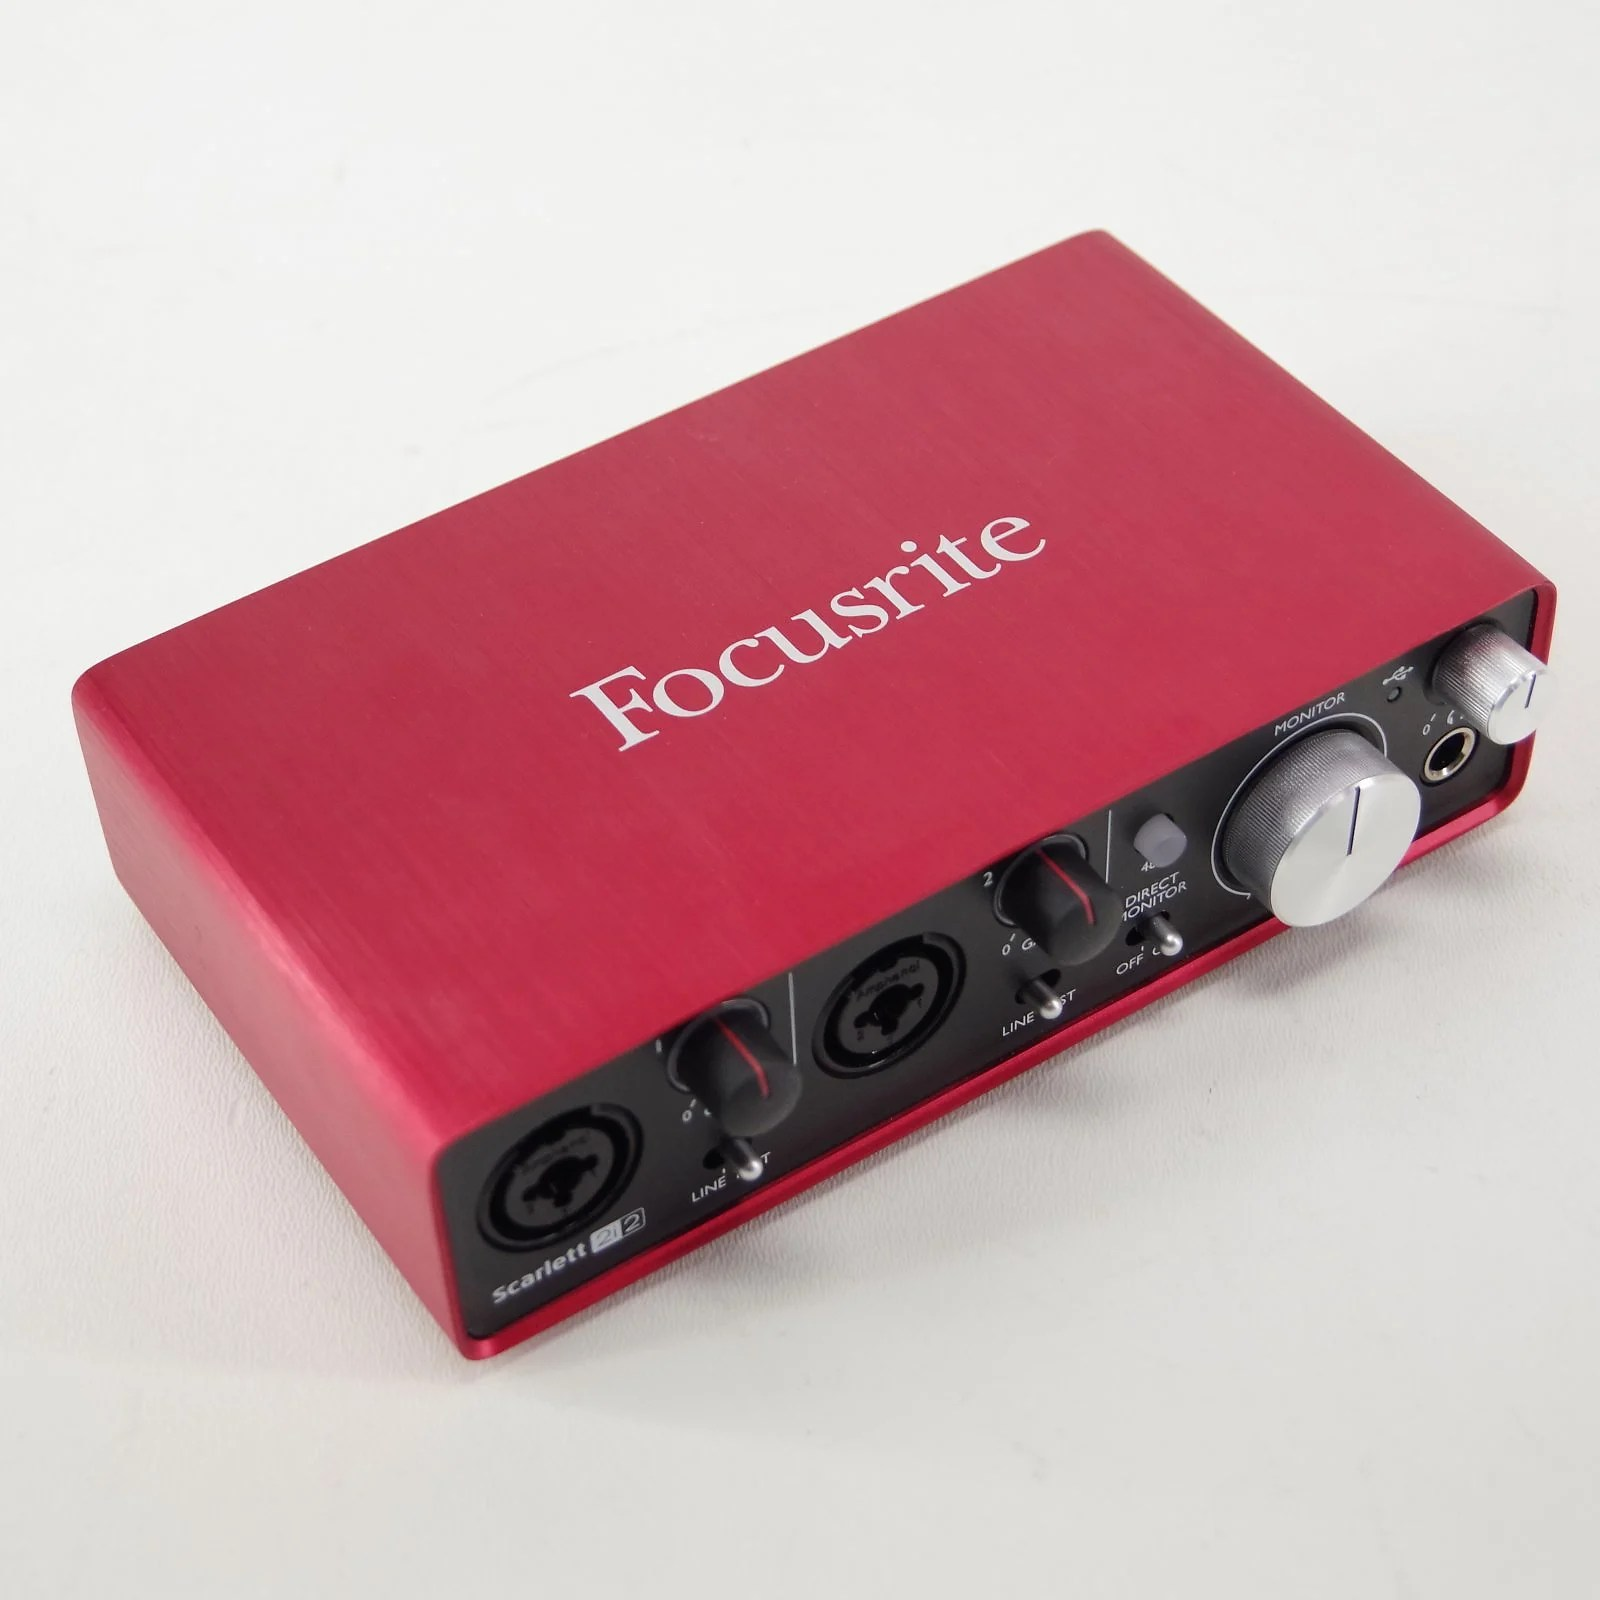 Scarlett 2i2 Focusrite Scarlett 2i2 Interface Used